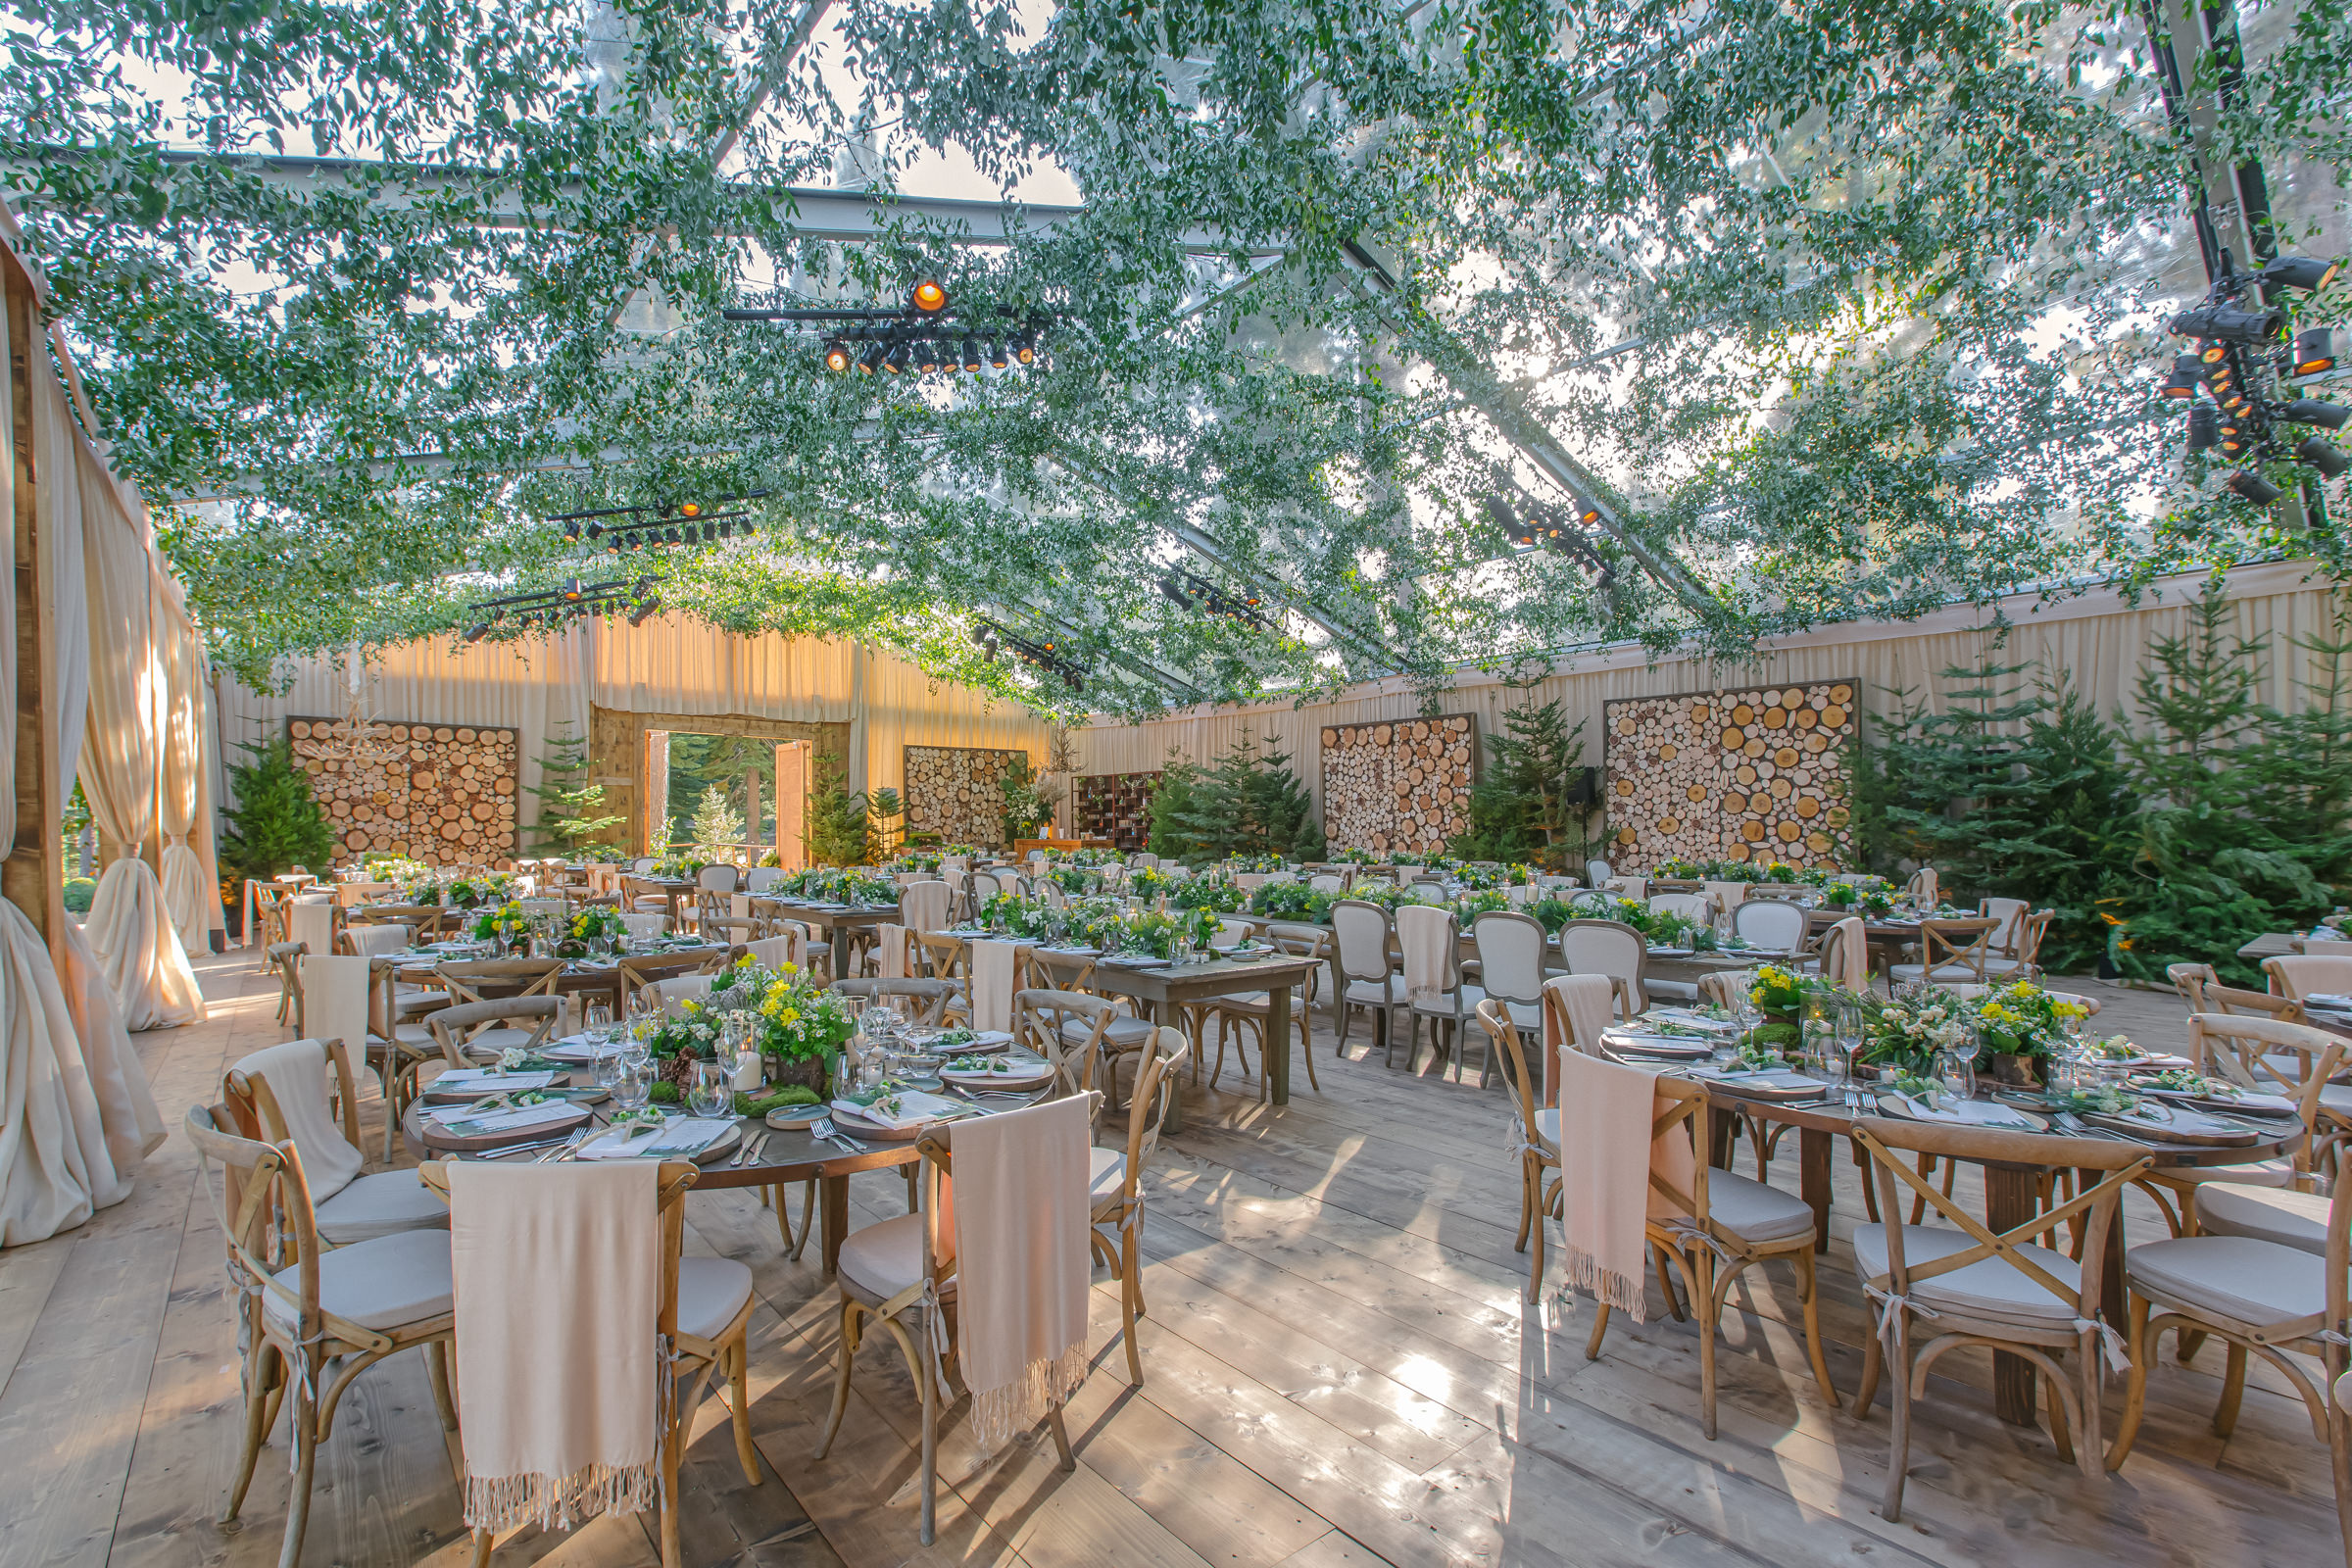 Reception decor outdoors garden setting in champagne and green - photo by Amy and Stuart Photography